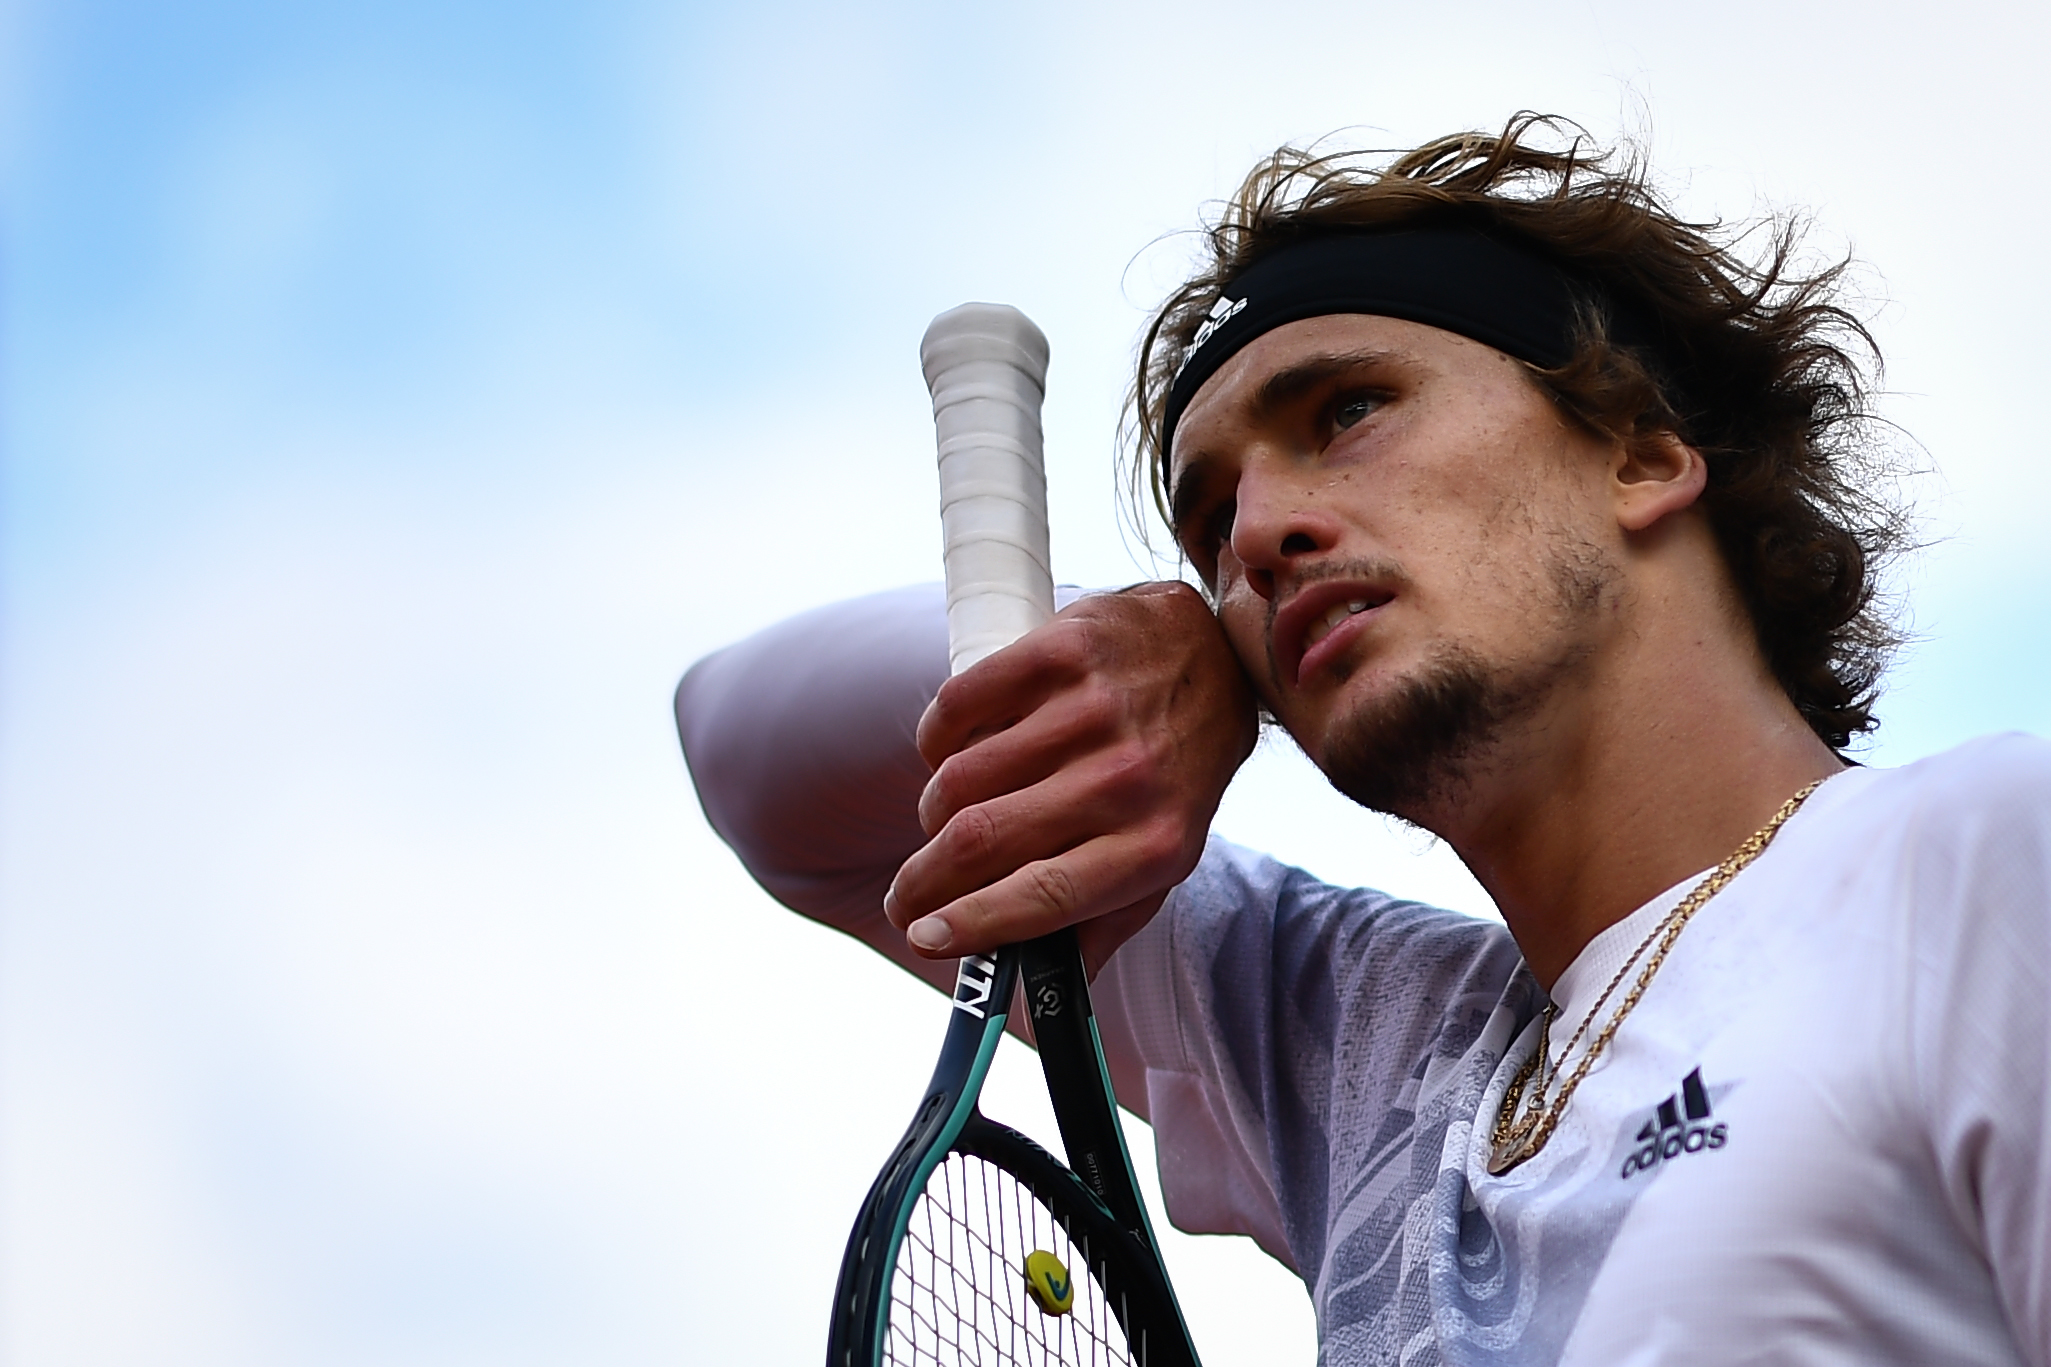 Sascha Zverev wipes his face during his French Open loss to Jannik Sinner.